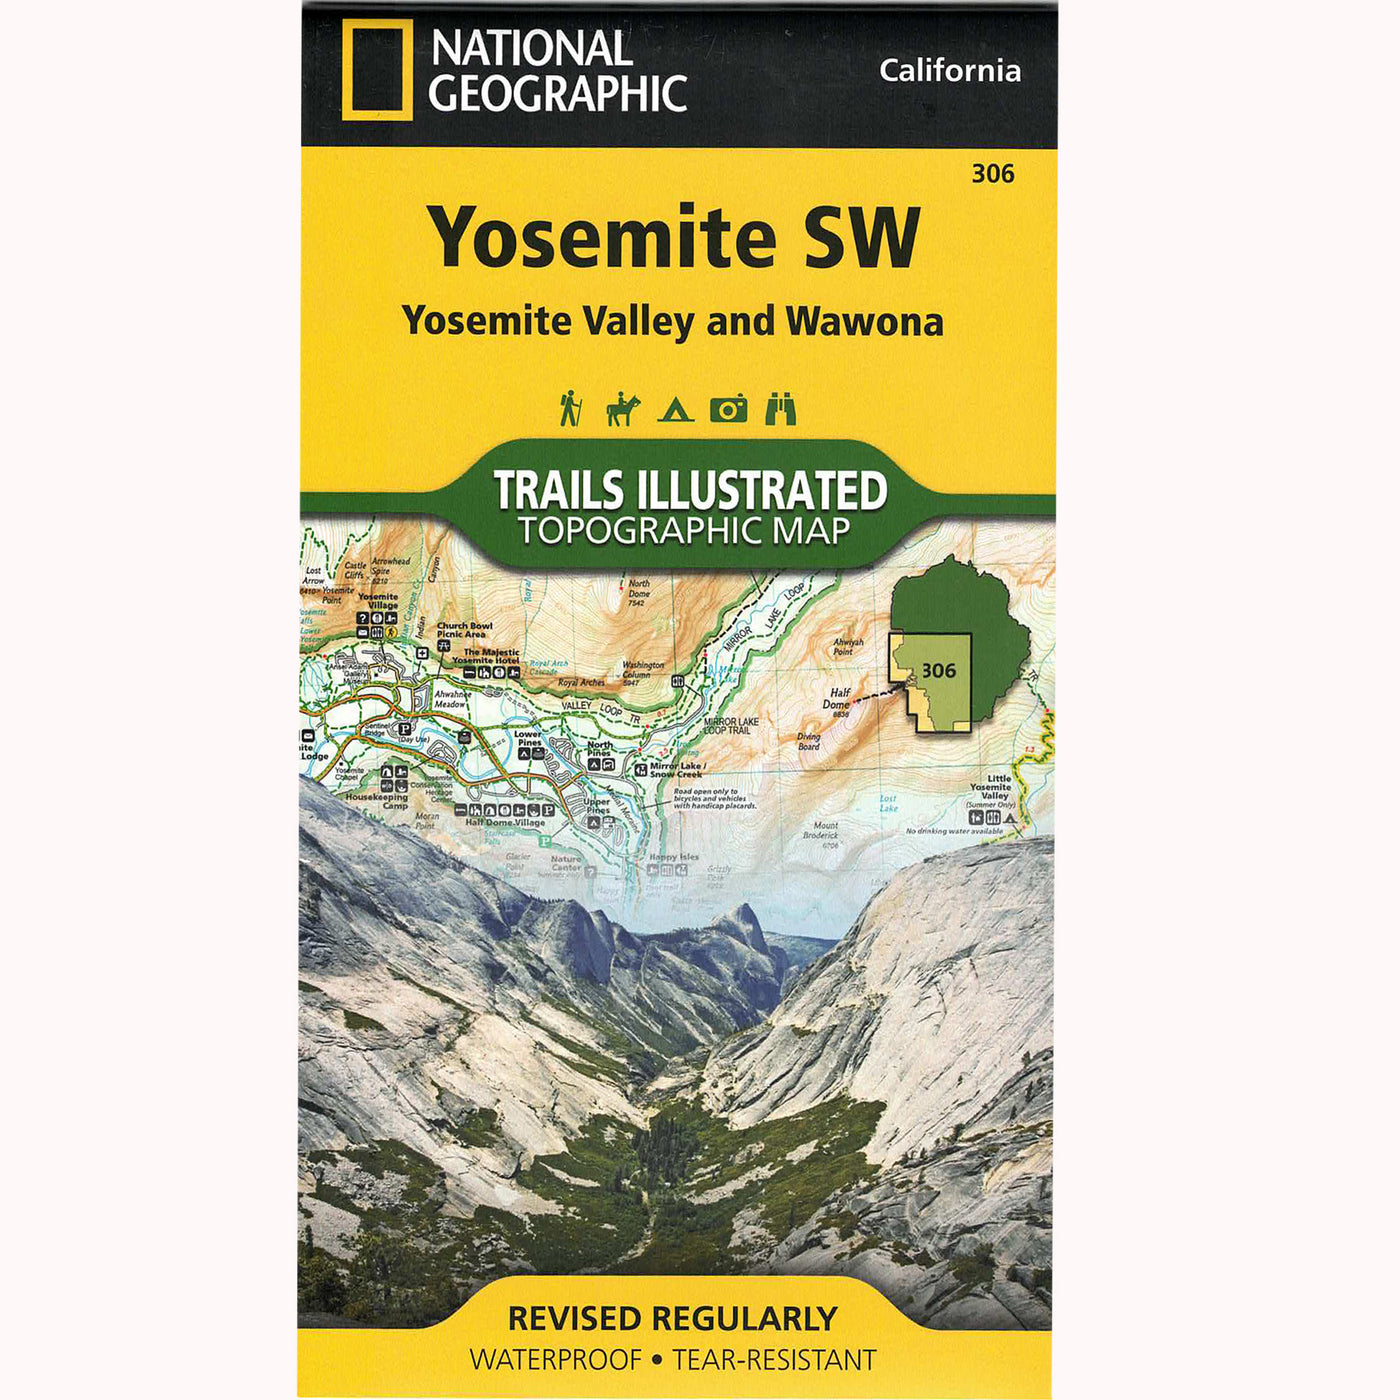 Yosemite SW Trails Illustrated: Yosemite Valley and Wawona - Topographical Map